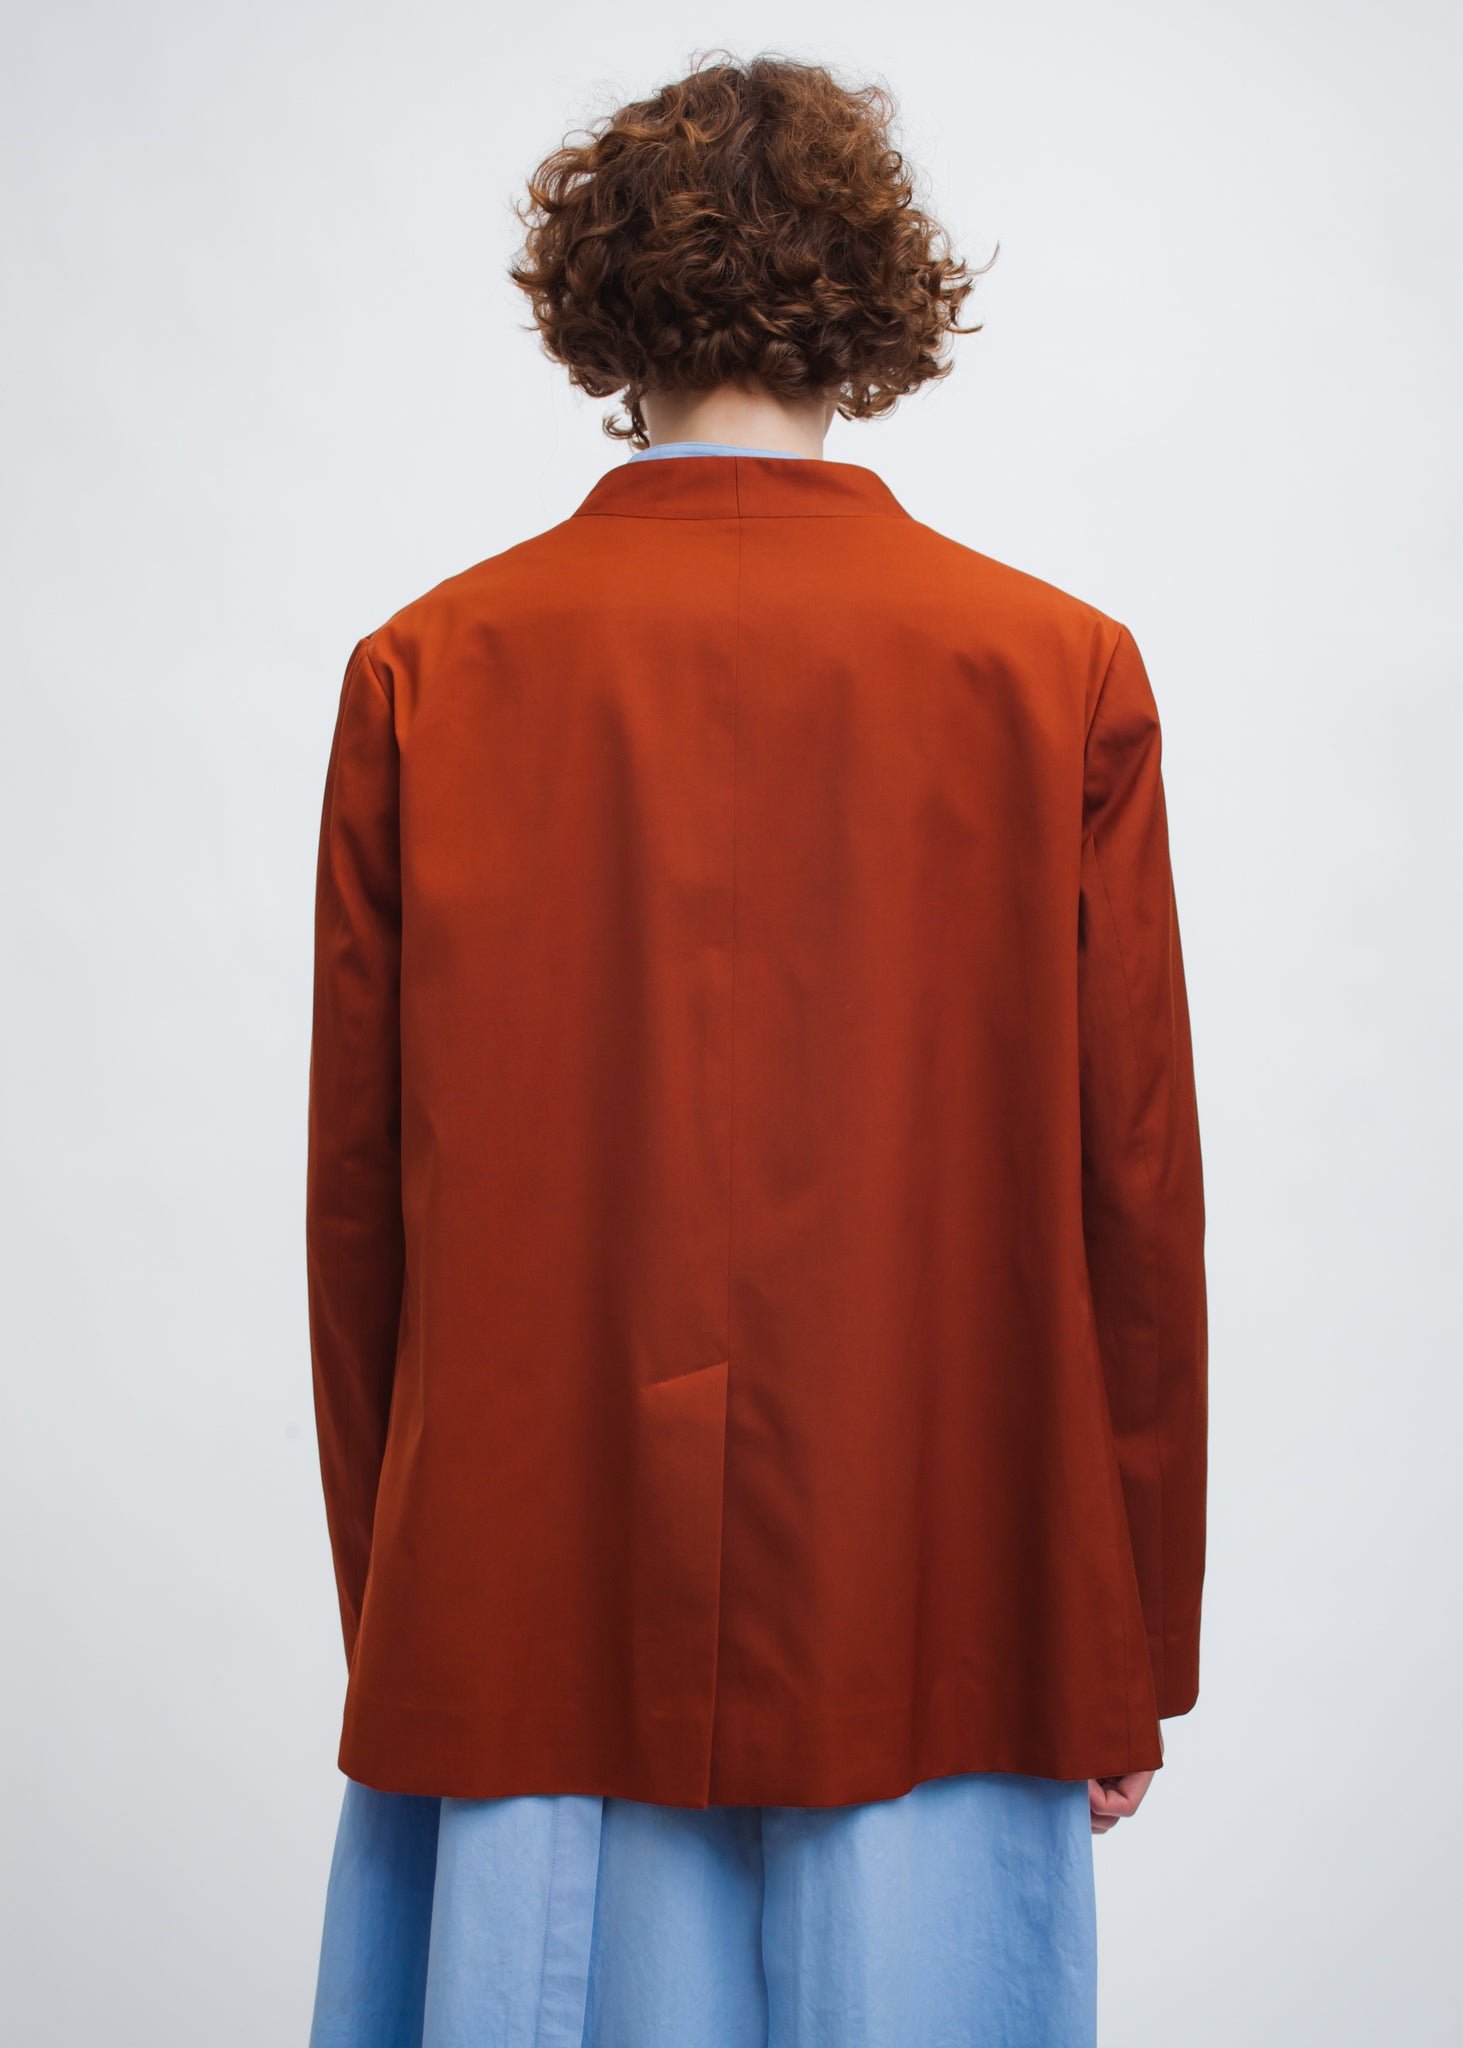 Omar Afridi A Jacket (Orange)